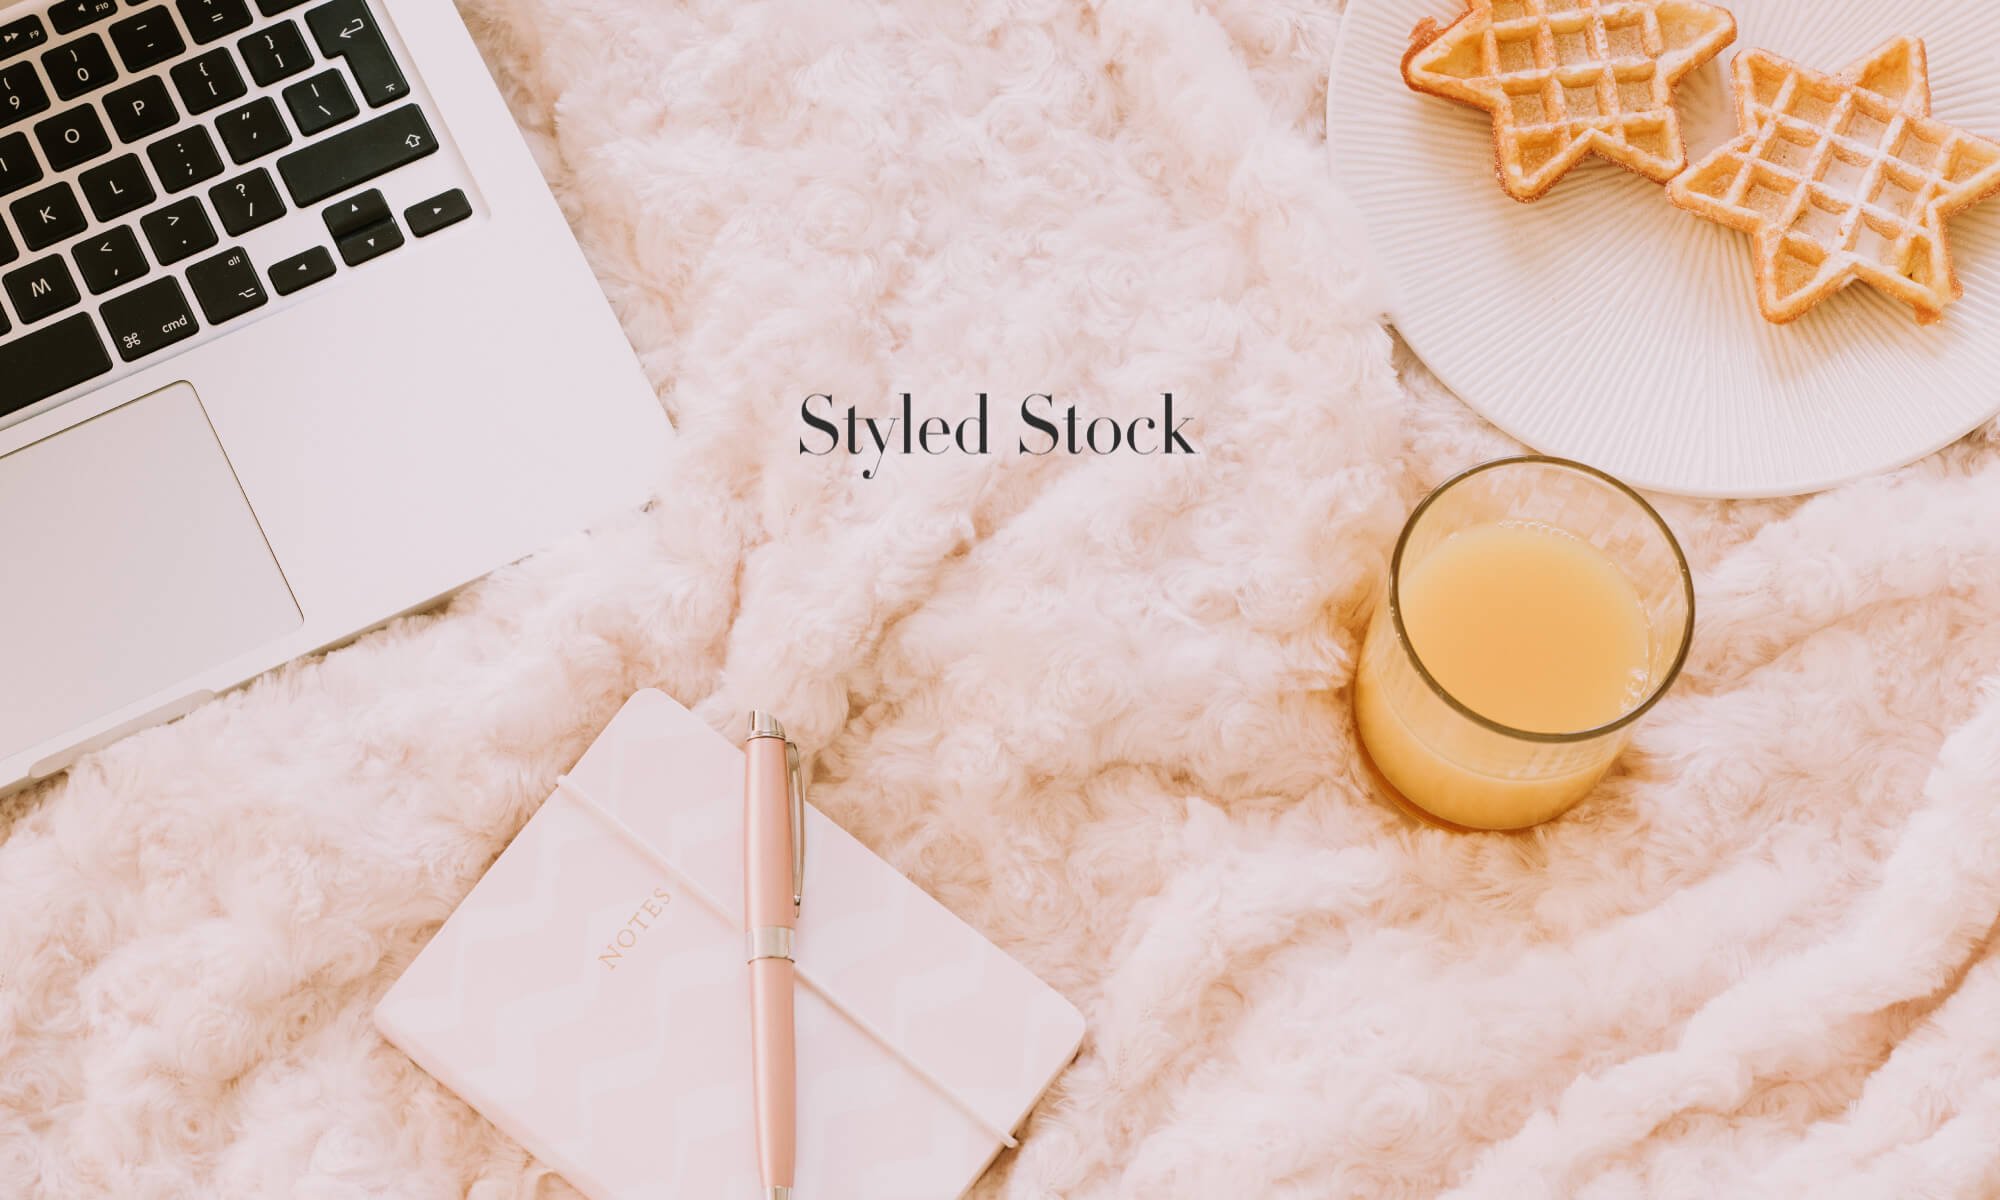 Styled Stock